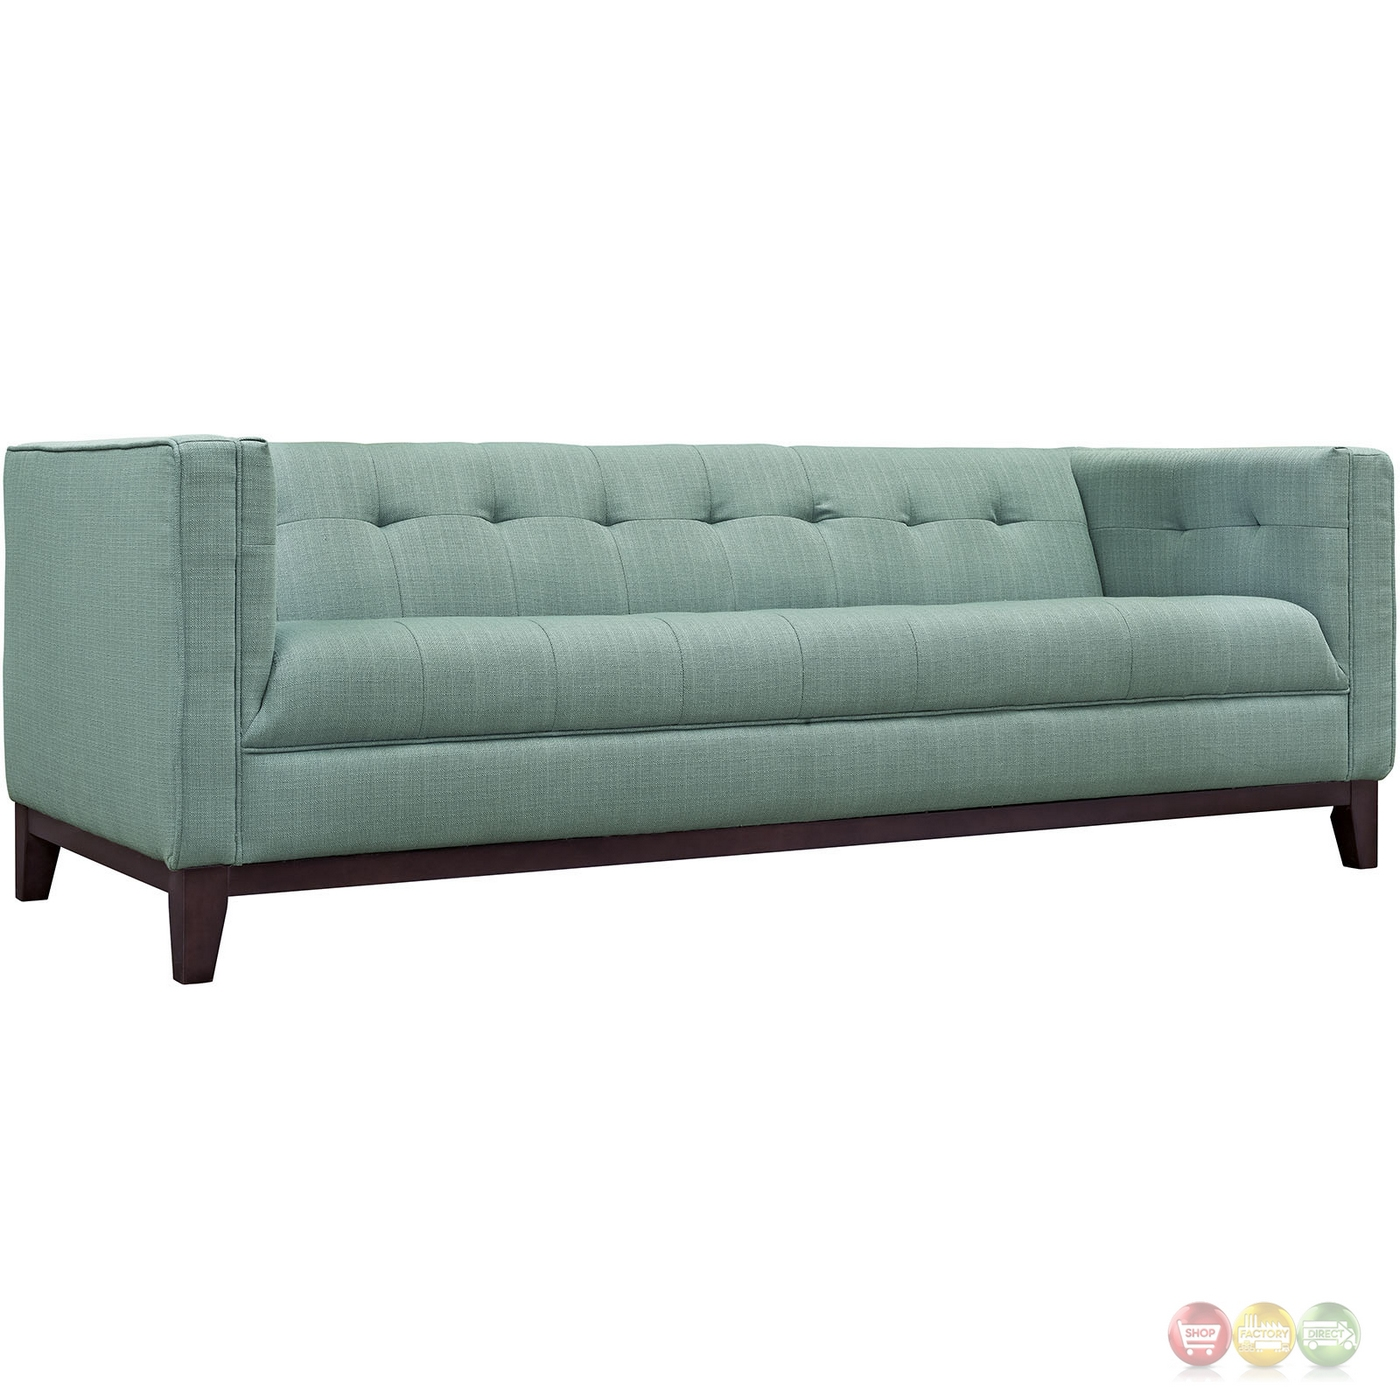 Serve Modern 2pc Upholstered Button tufted Sofa amp Armchair  : serve modern 2pc upholstered button tufted sofa armchair set laguna 9 from shopfactorydirect.com size 1400 x 1400 jpeg 414kB